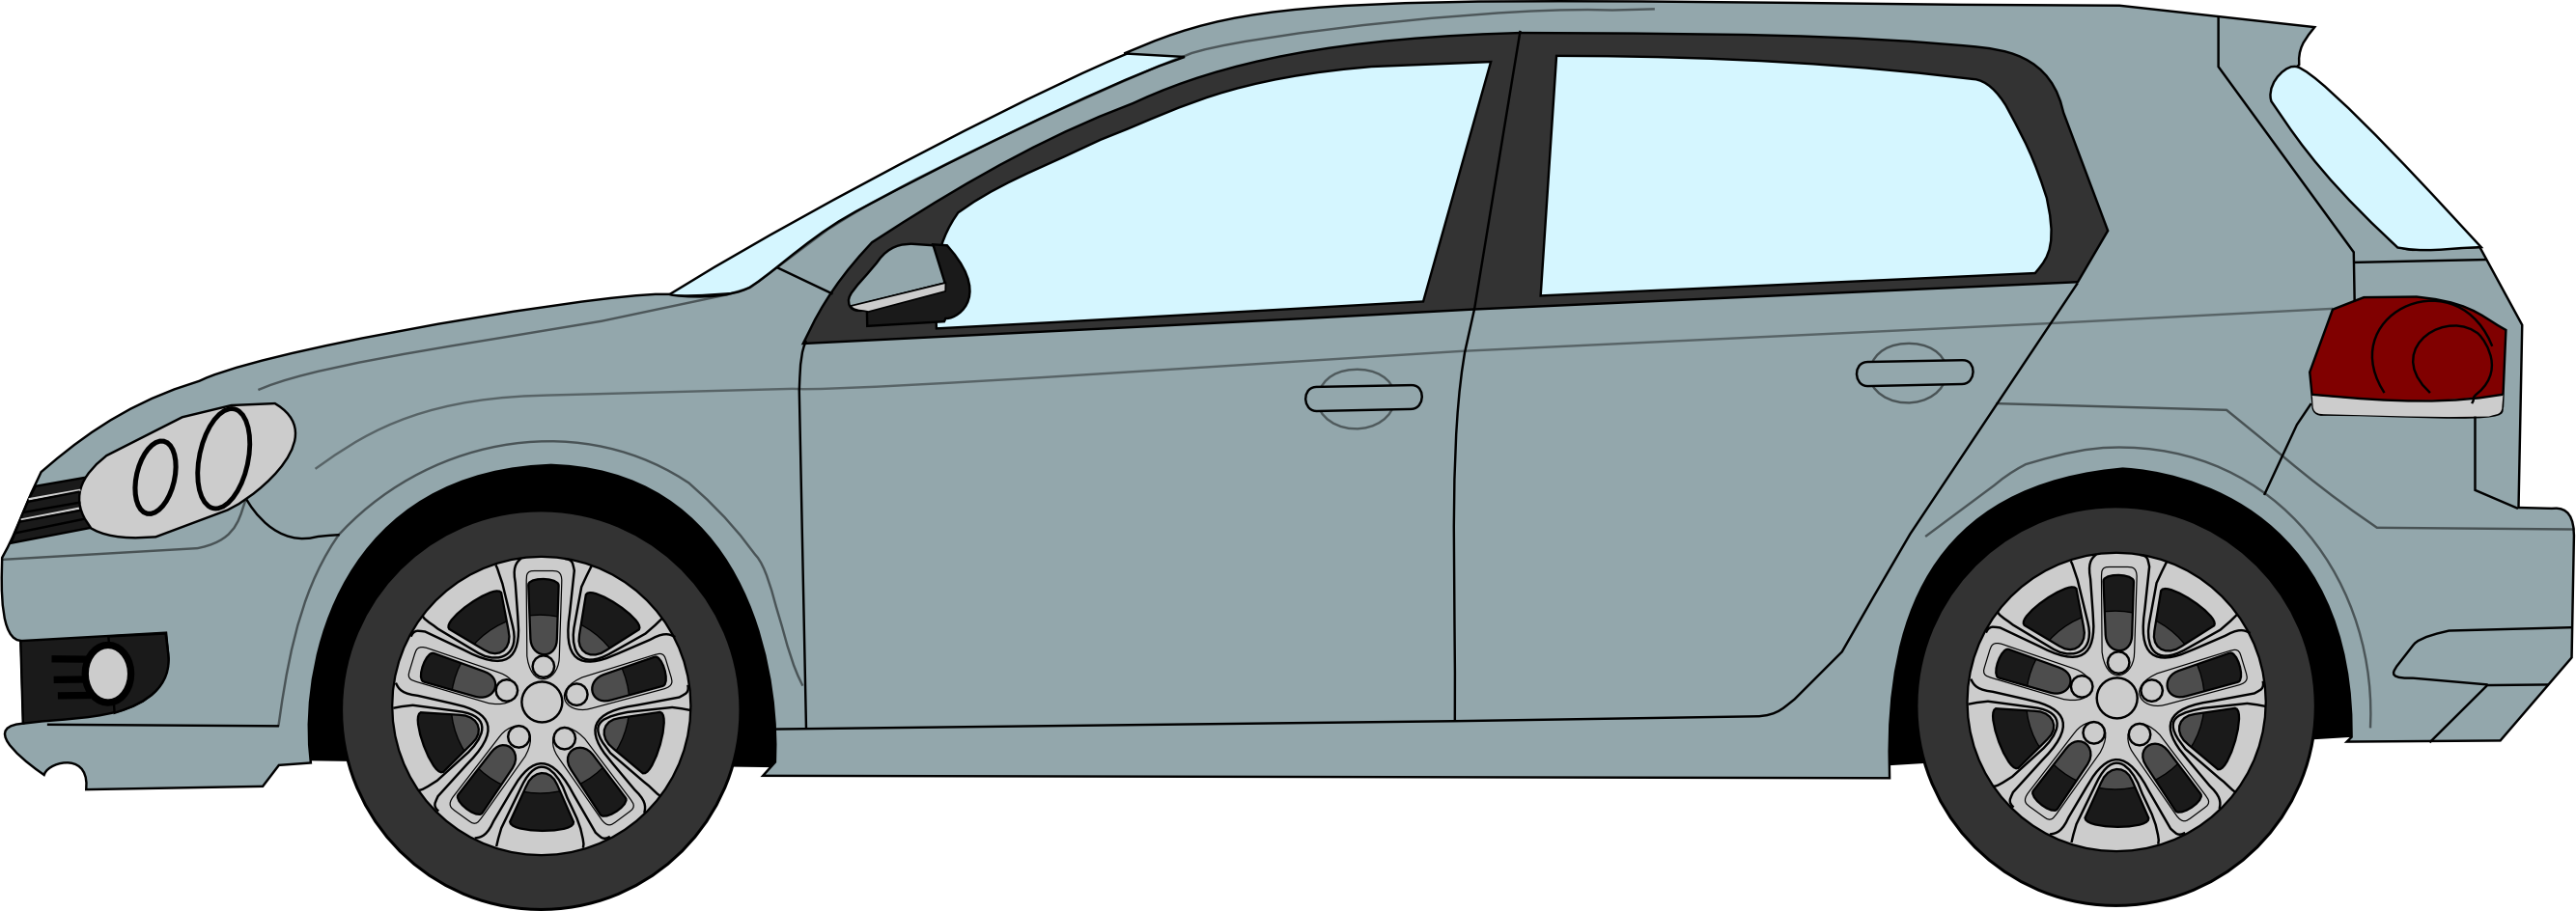 2668x944 Filevw Golf 6 Profile Drawing.png